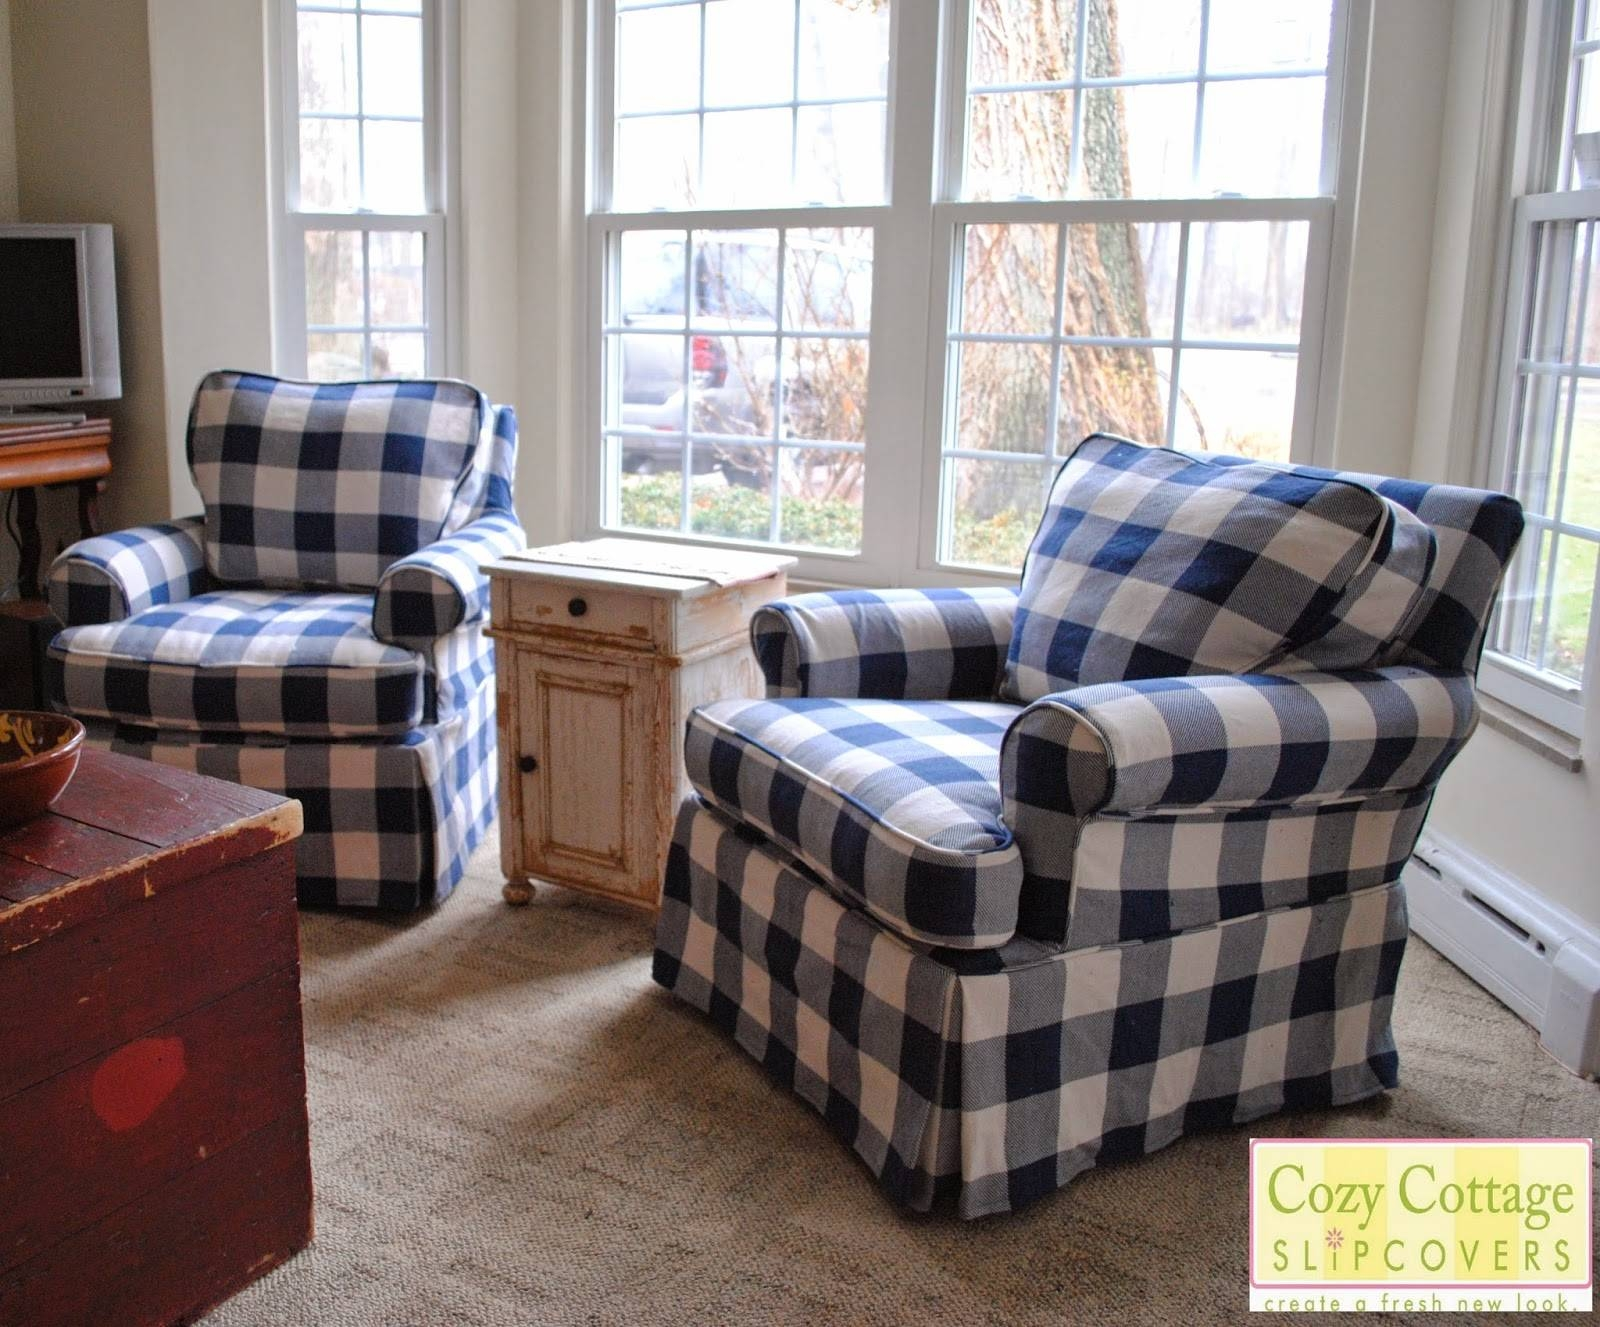 Cozy Cottage Slipcovers: Blue And White Buffalo Check Slipcovers inside Buffalo Check Sofas (Image 11 of 15)